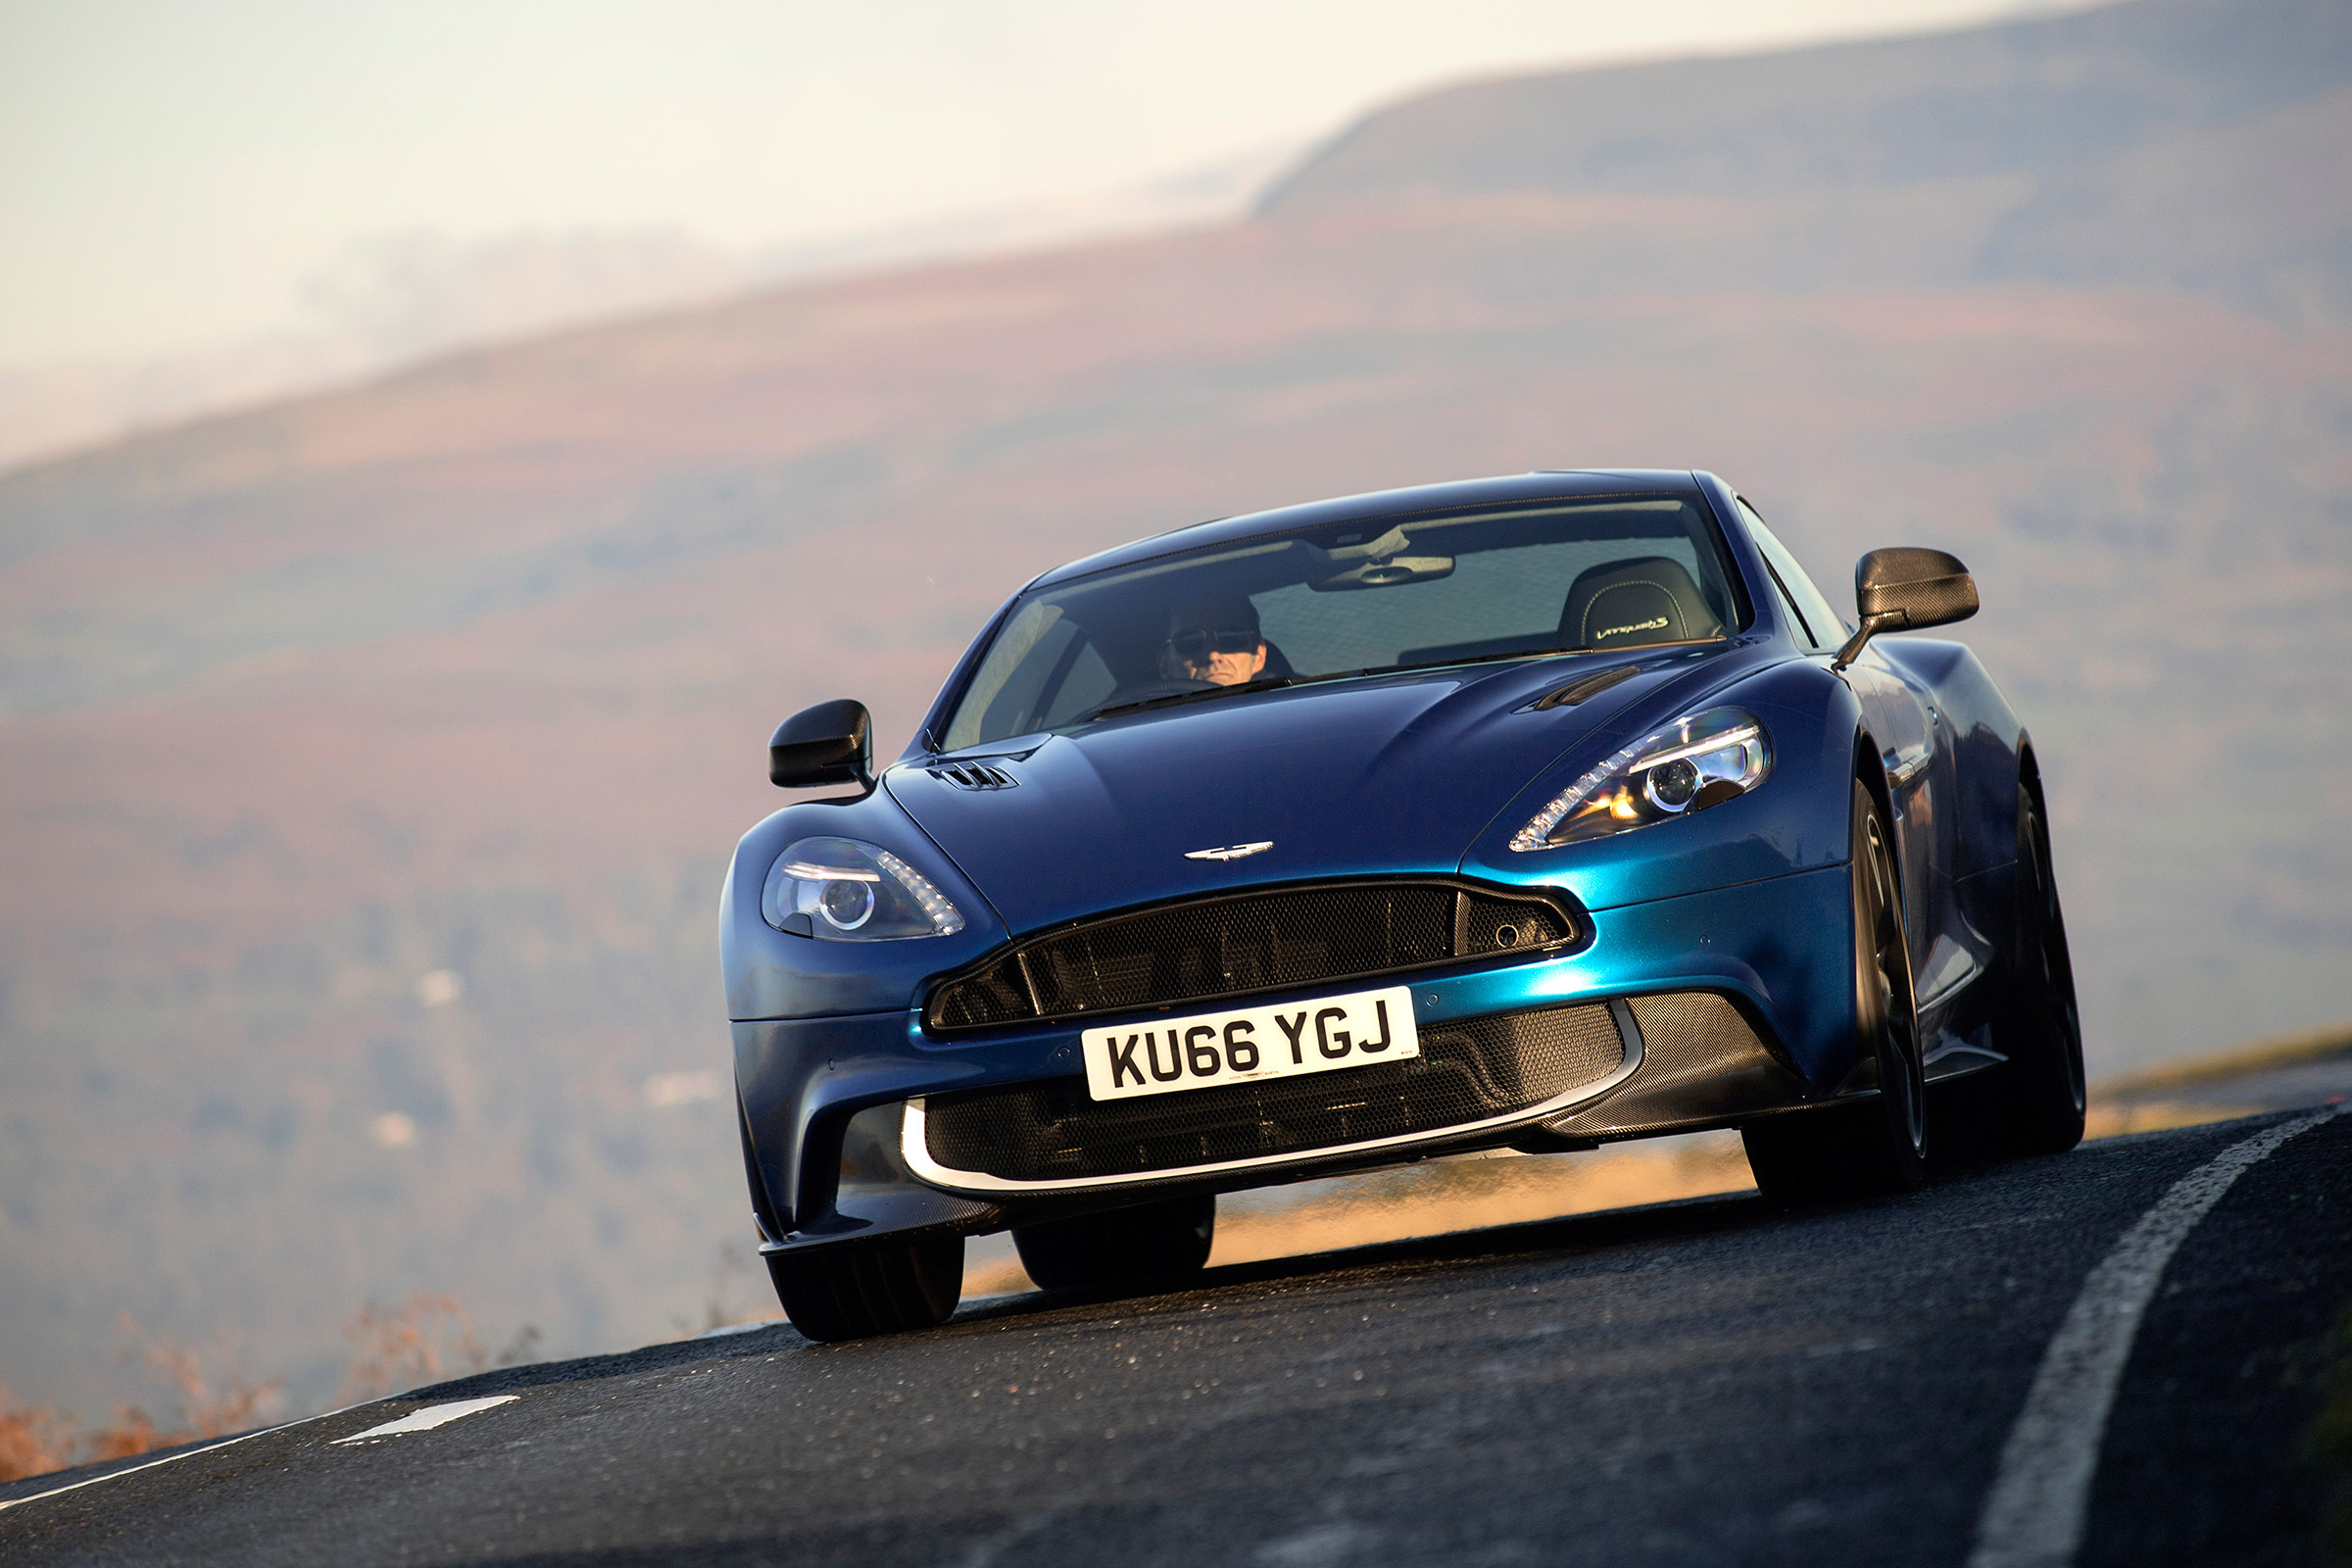 Aston Martin Vanquish S Review Should You Buy One Over A Db11 Evo